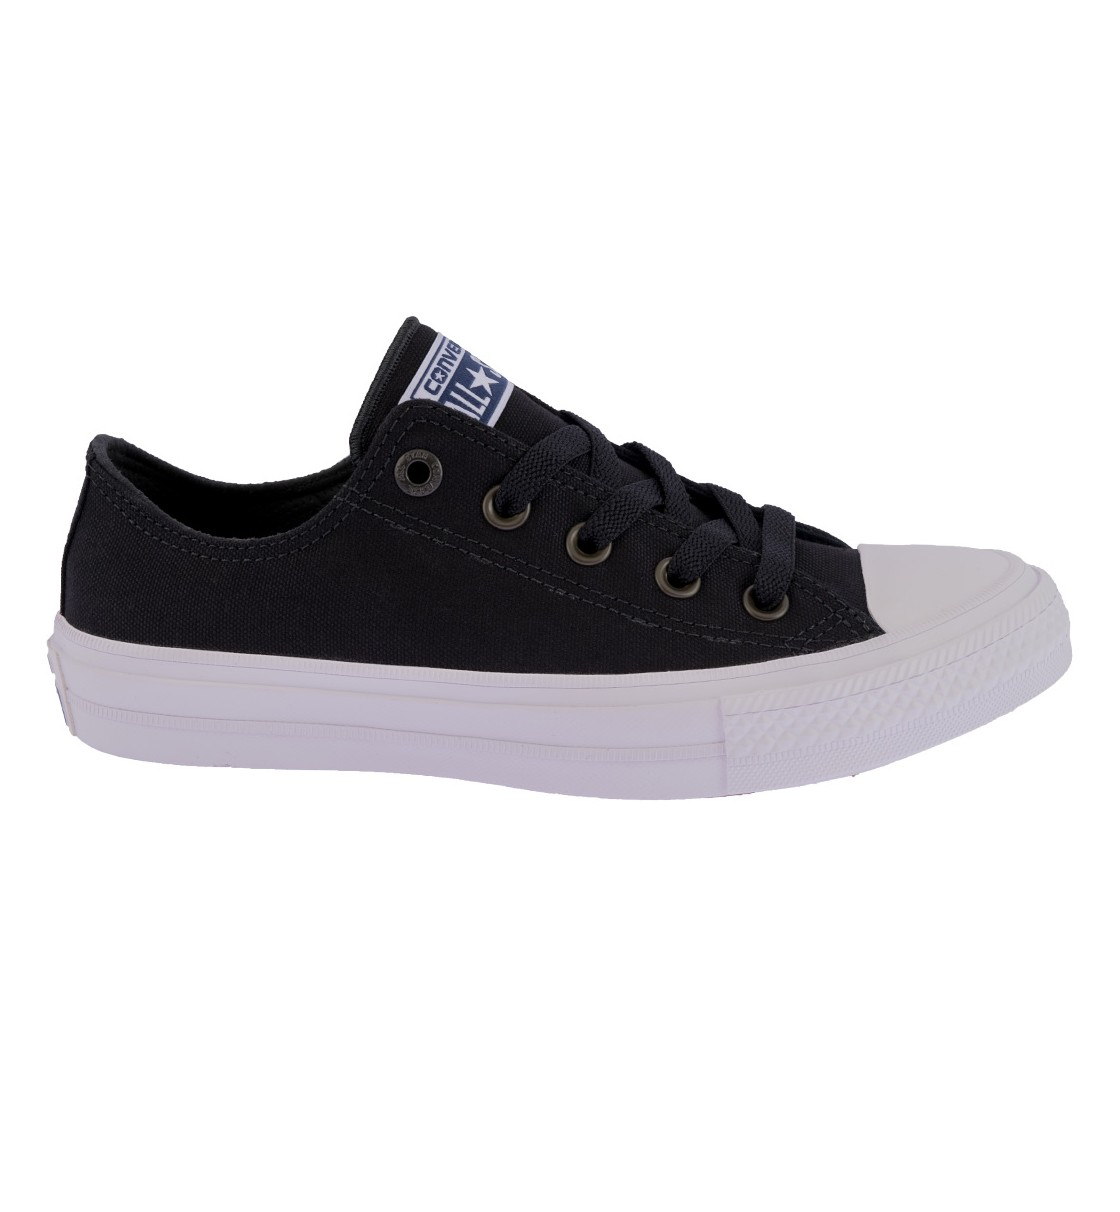 Converse Unisex Παπούτσι Μόδας Chuck Taylor All Star Ii Ox 150149C